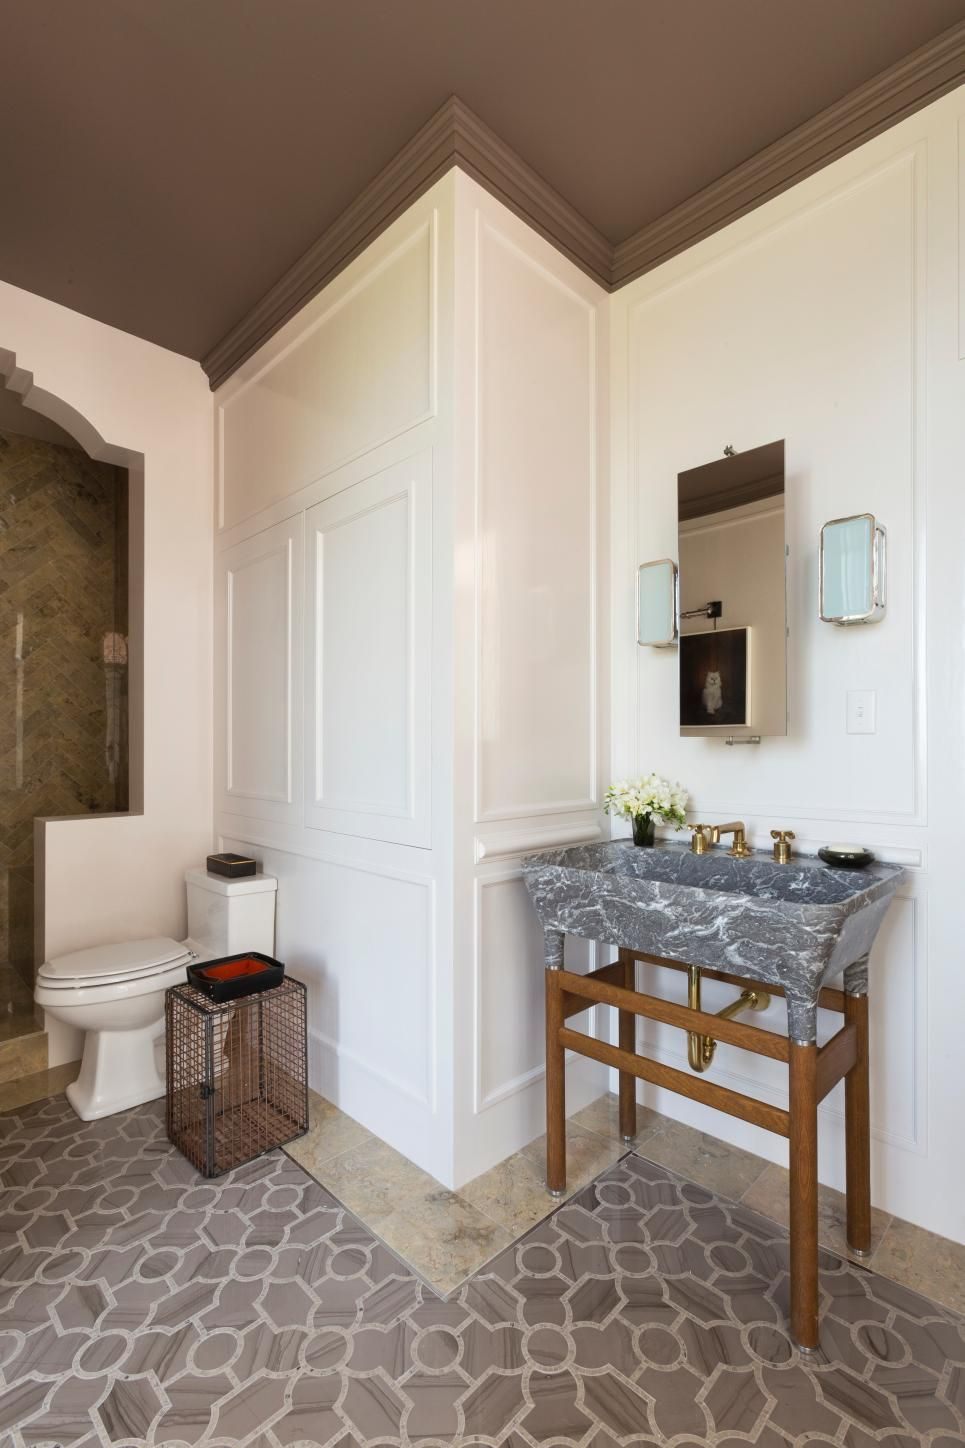 Custom Design Bathrooms Amazing A Sink Basin Carved From Solid Marble And A Customdesigned Shower Design Decoration